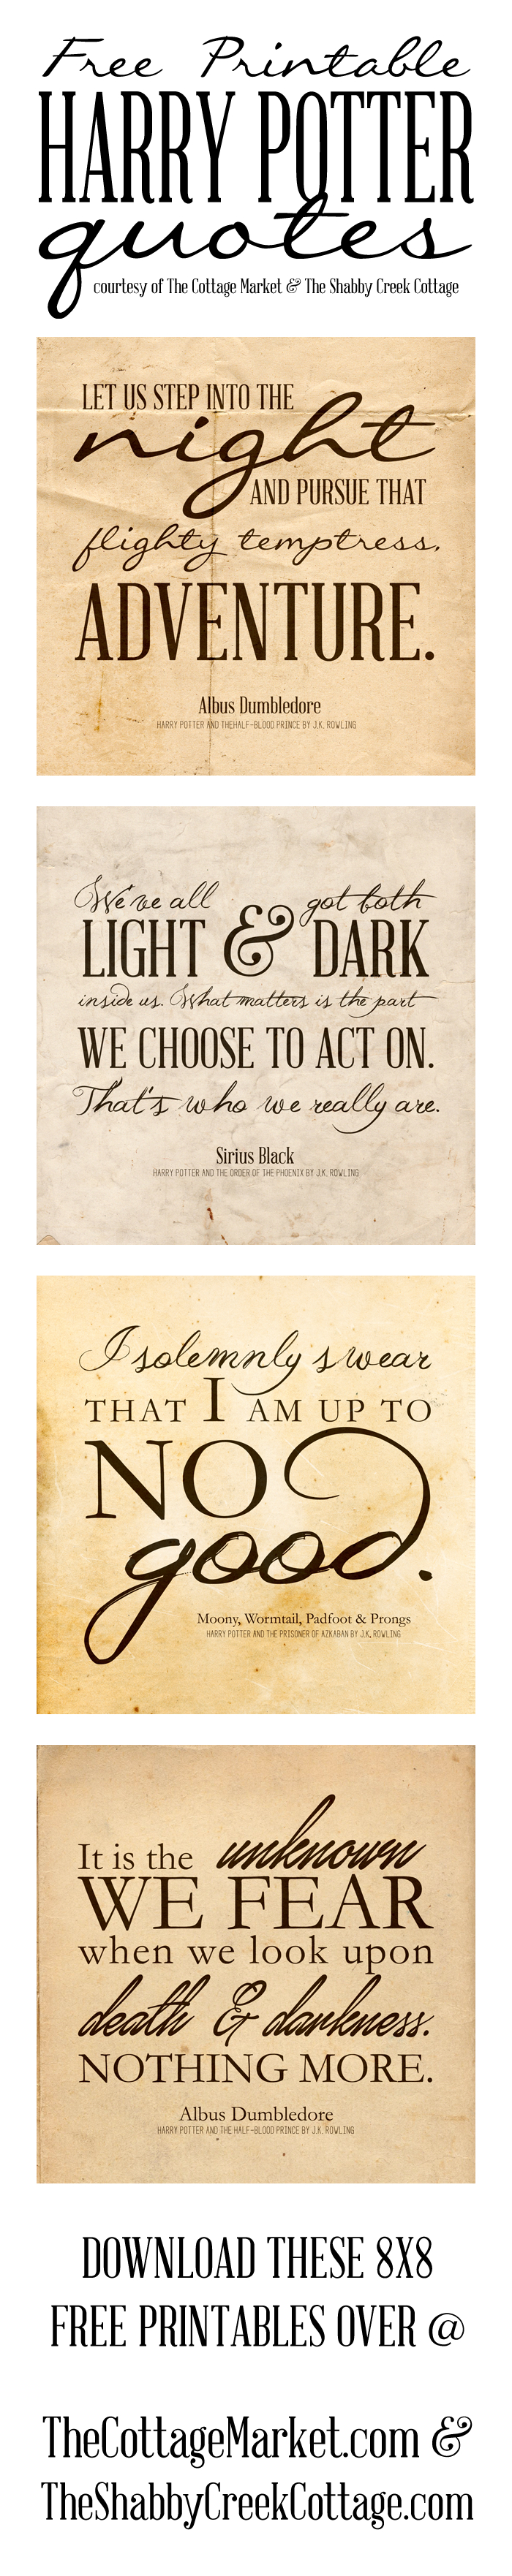 Free Printable Harry Potter Quotes   The Cottage Market - Free Printable Harry Potter Posters